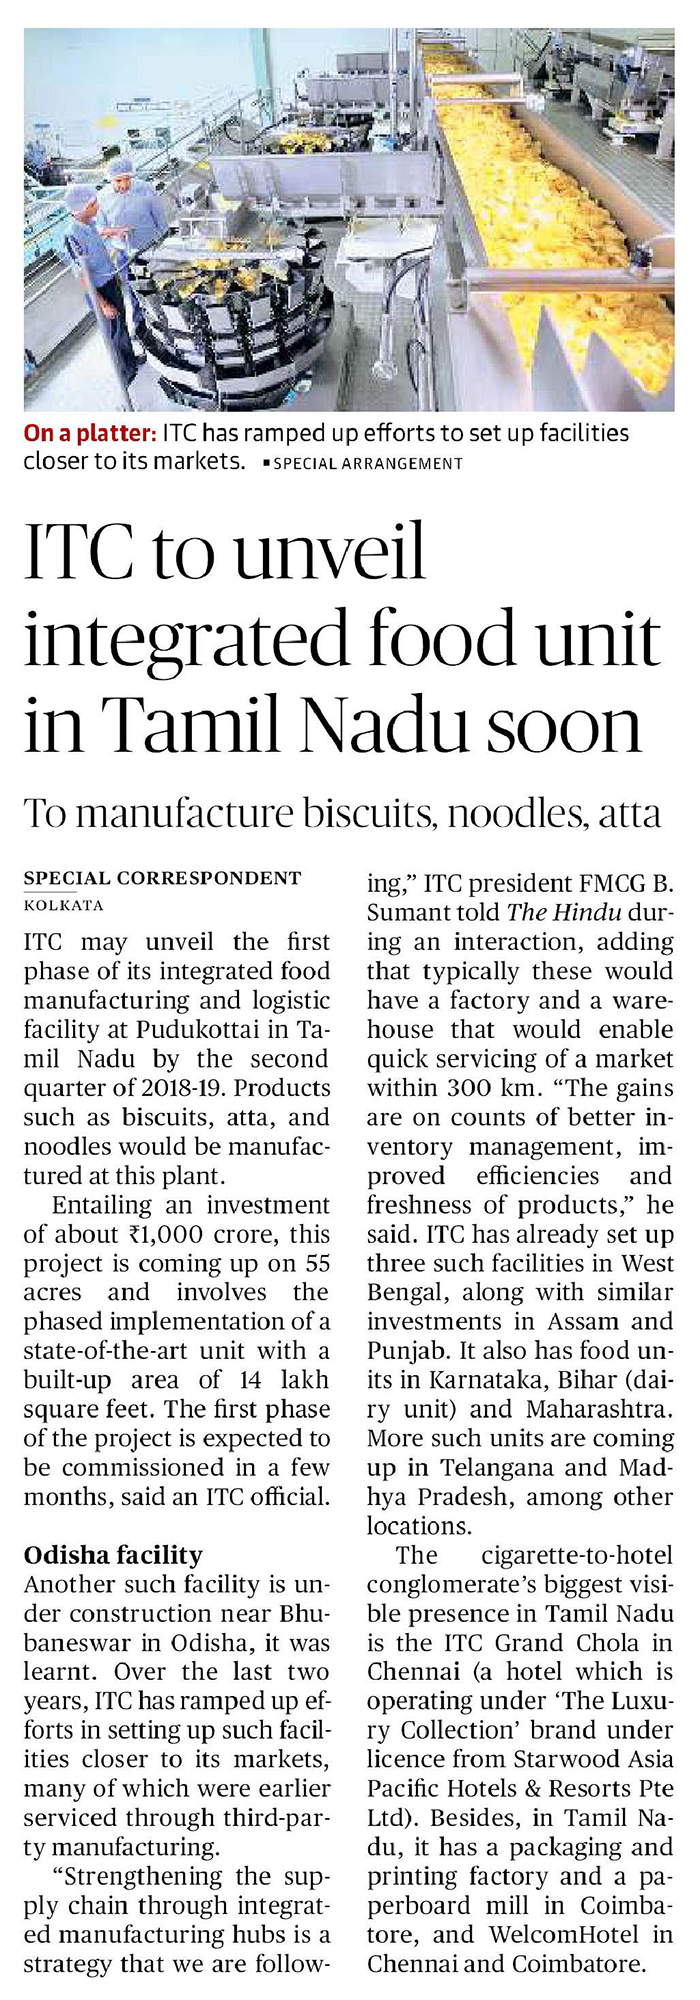 ITC to unveil integrated food unit in Tamil Nadu soon